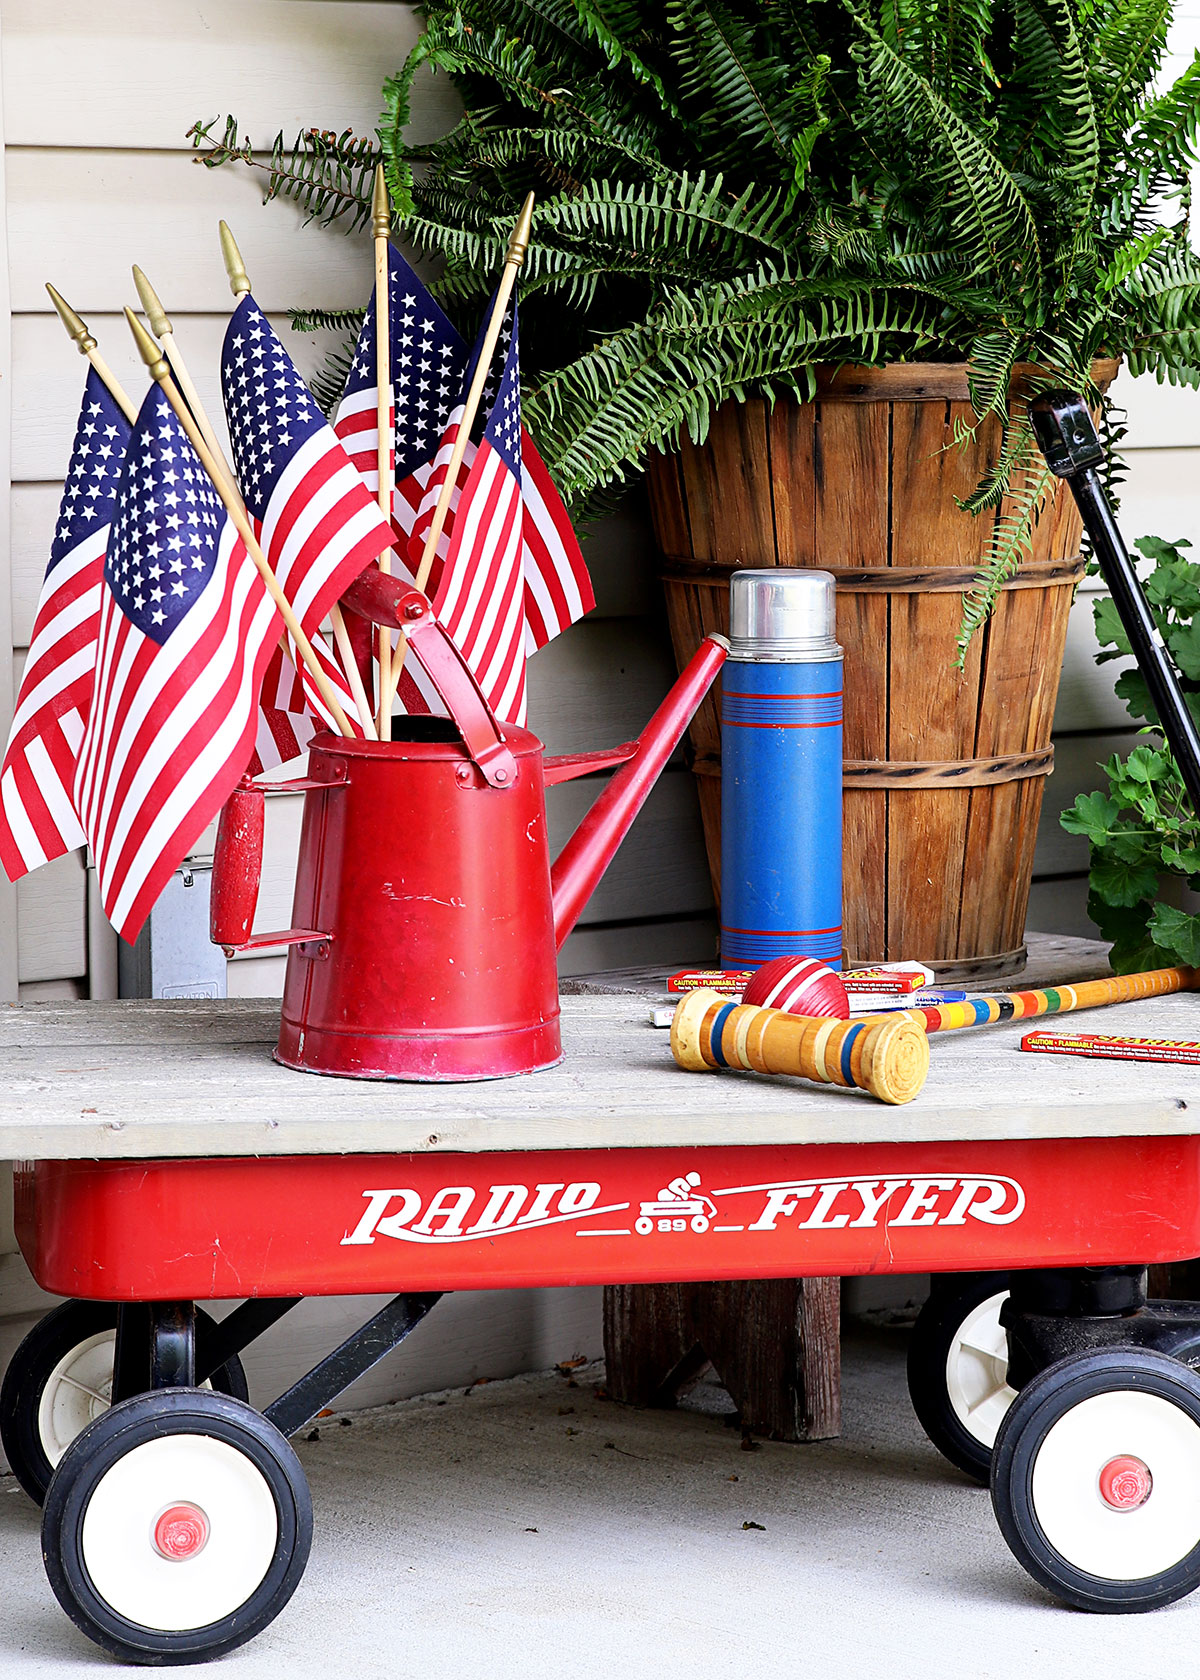 Red Radio Flyer wagon sitting on porch for Fourth Of July decorations.